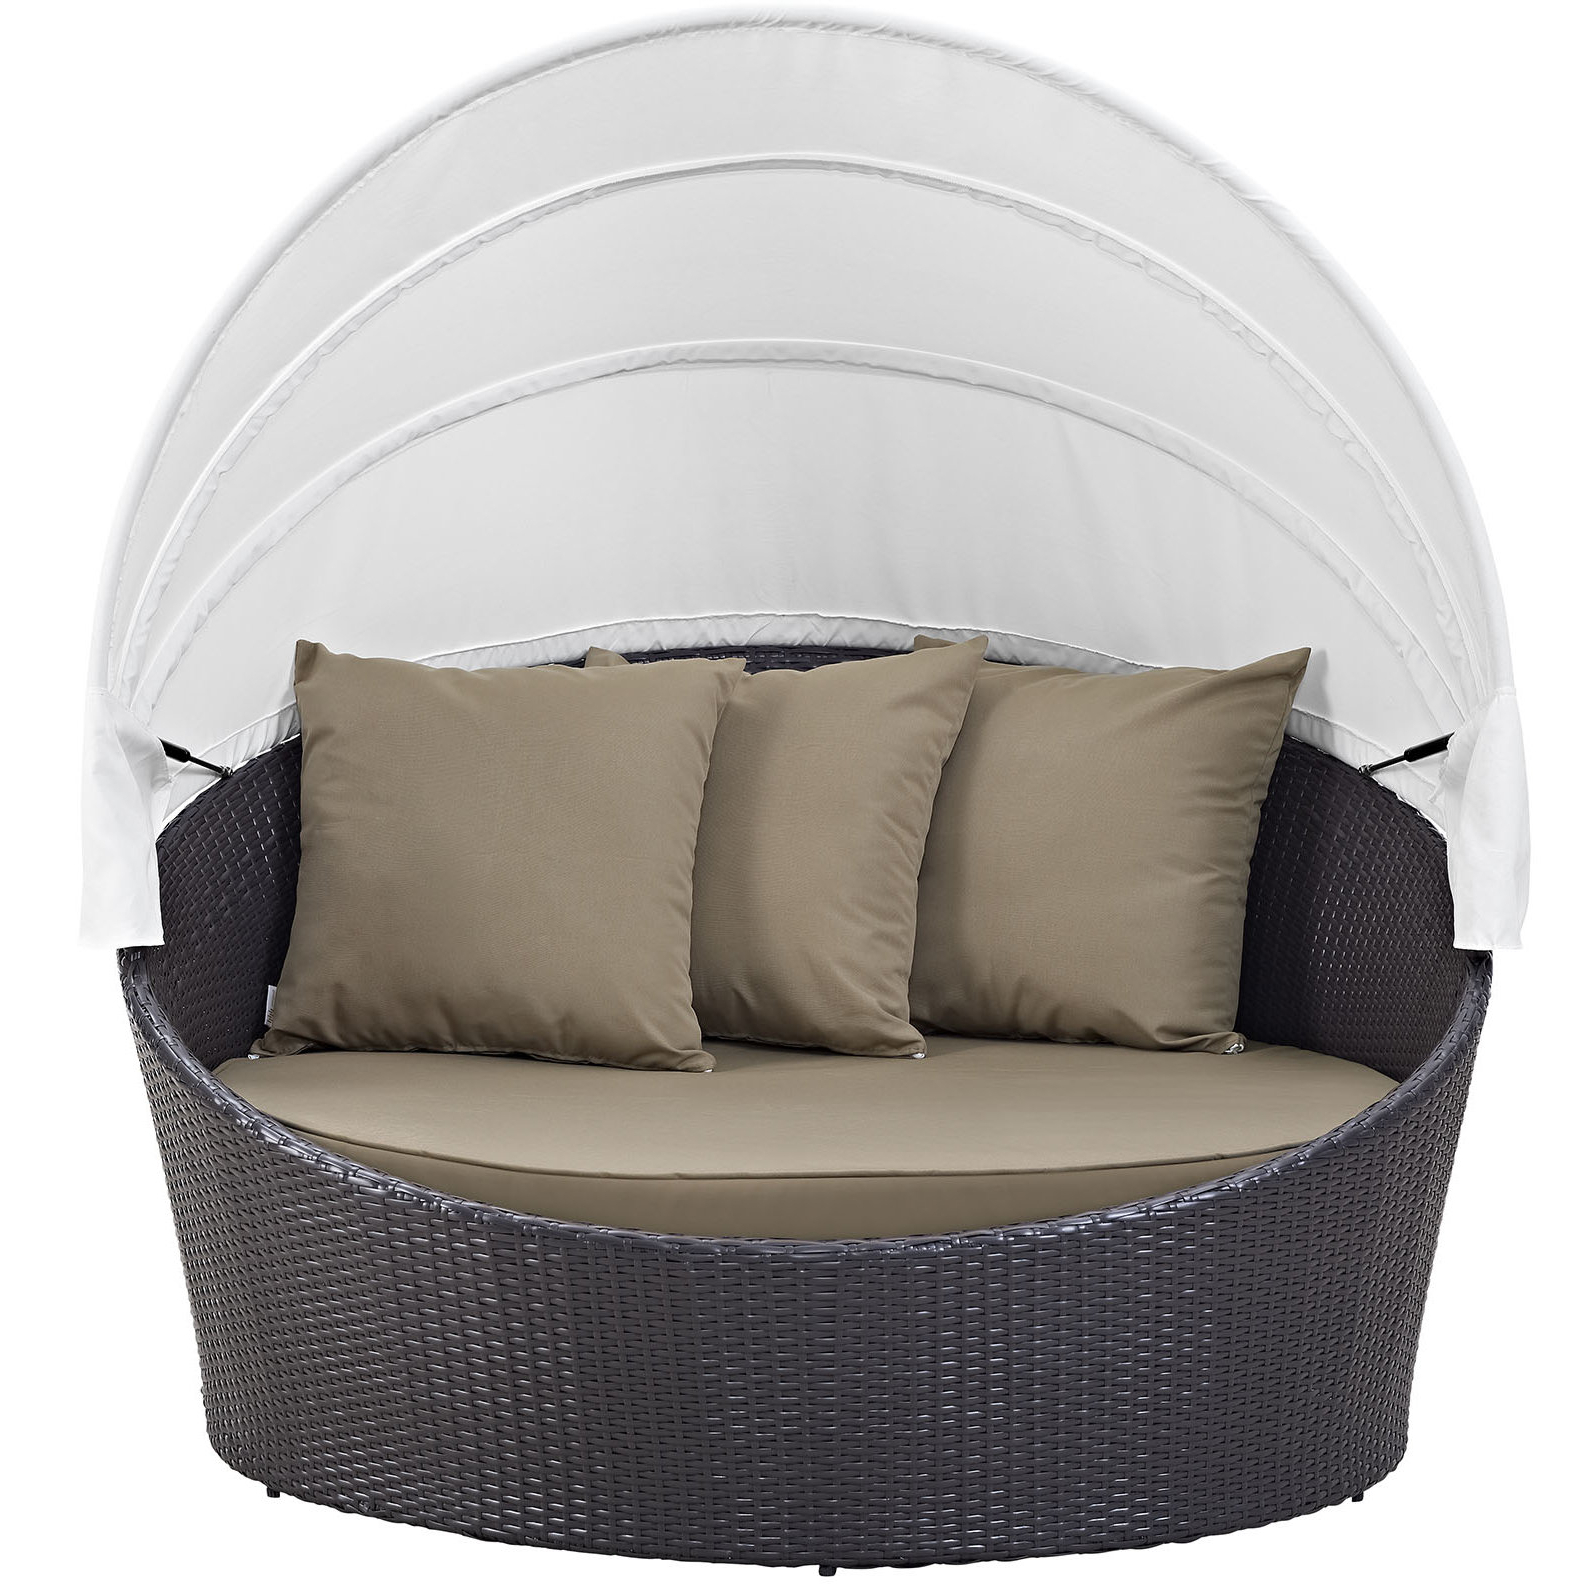 Preferred Beal Patio Daybeds With Cushions Throughout Brentwood Canopy Patio Daybed With Cushions (View 20 of 25)